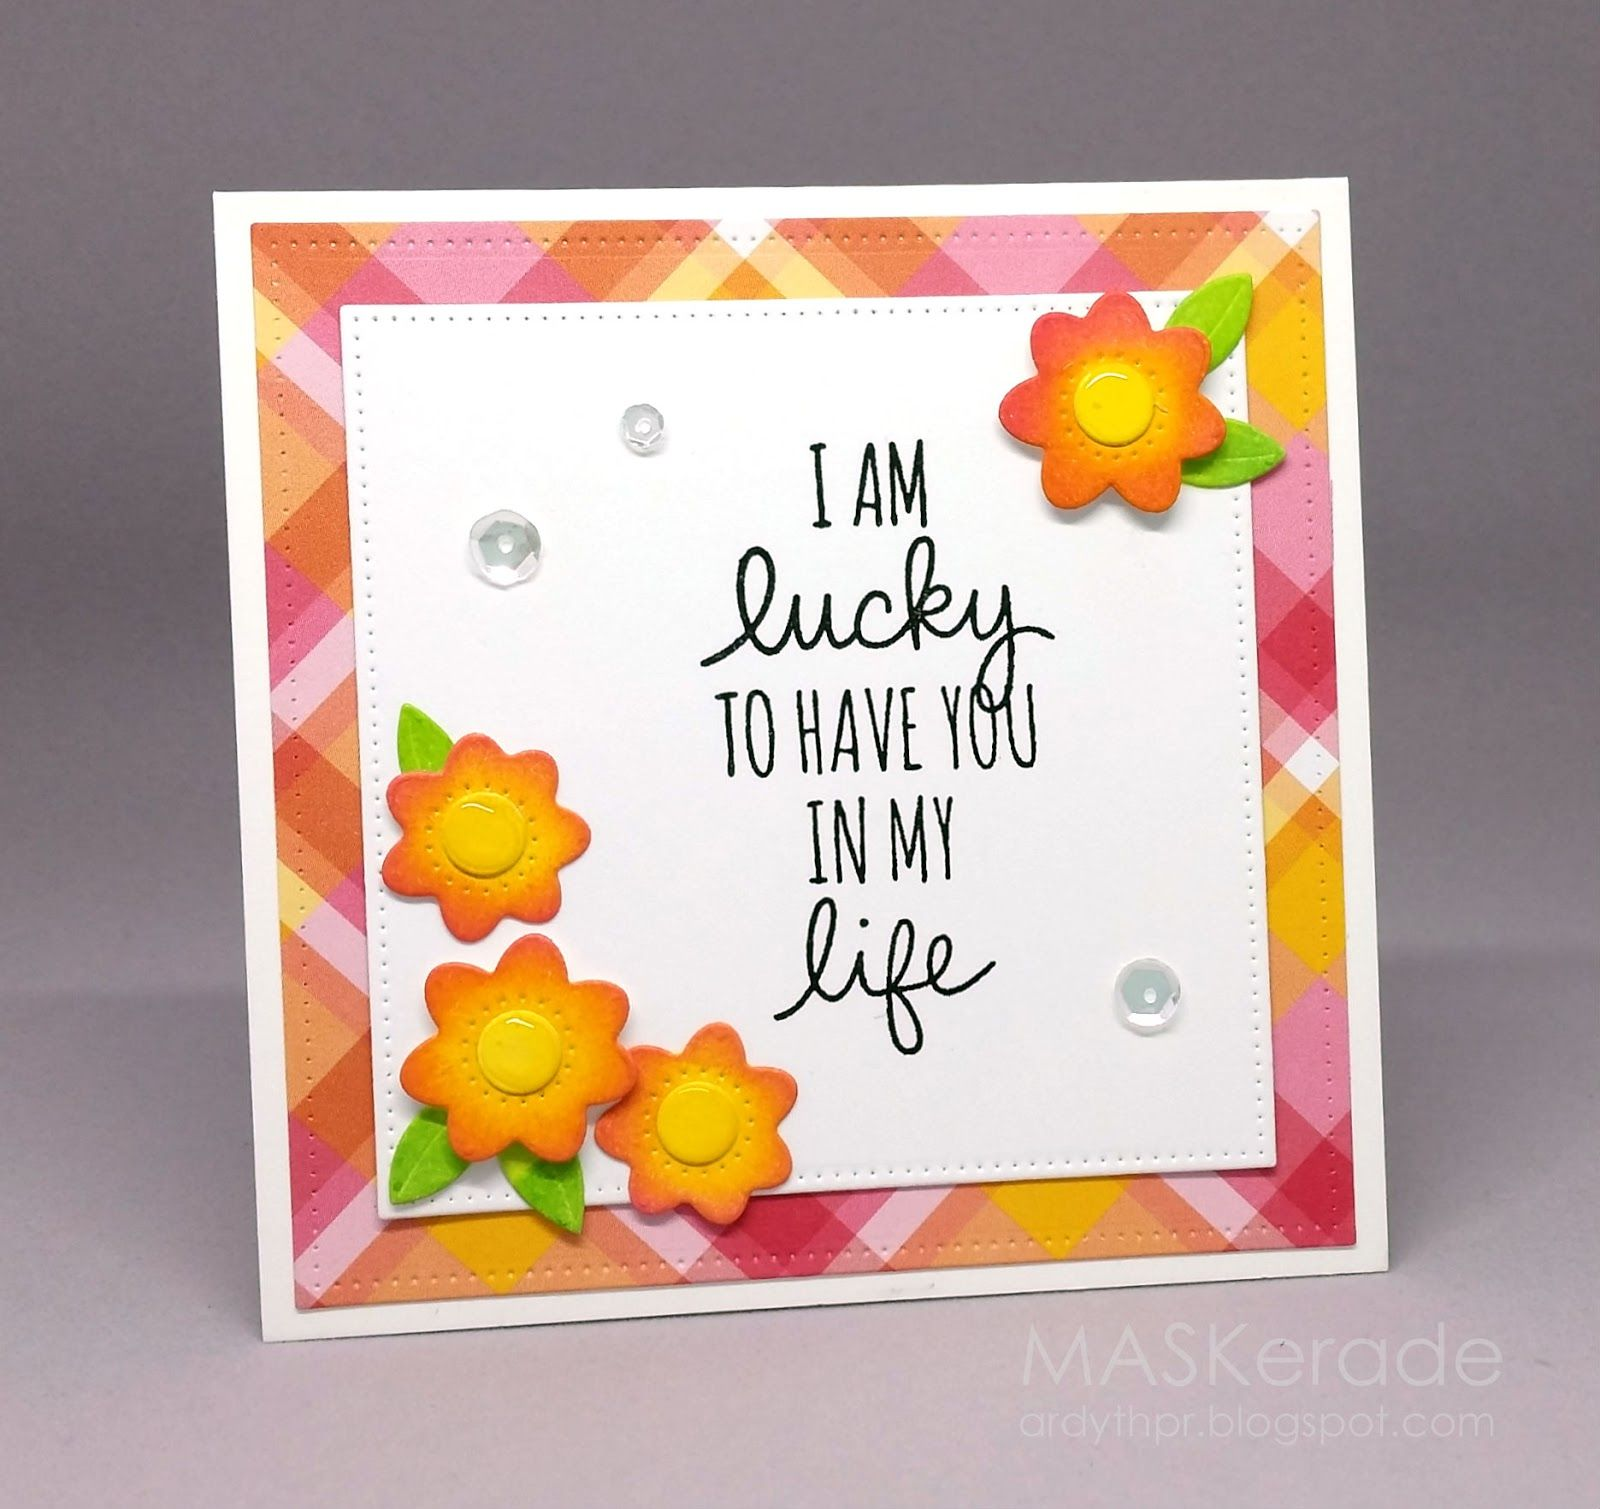 Maskerade fs lucky cards encouragement pinterest